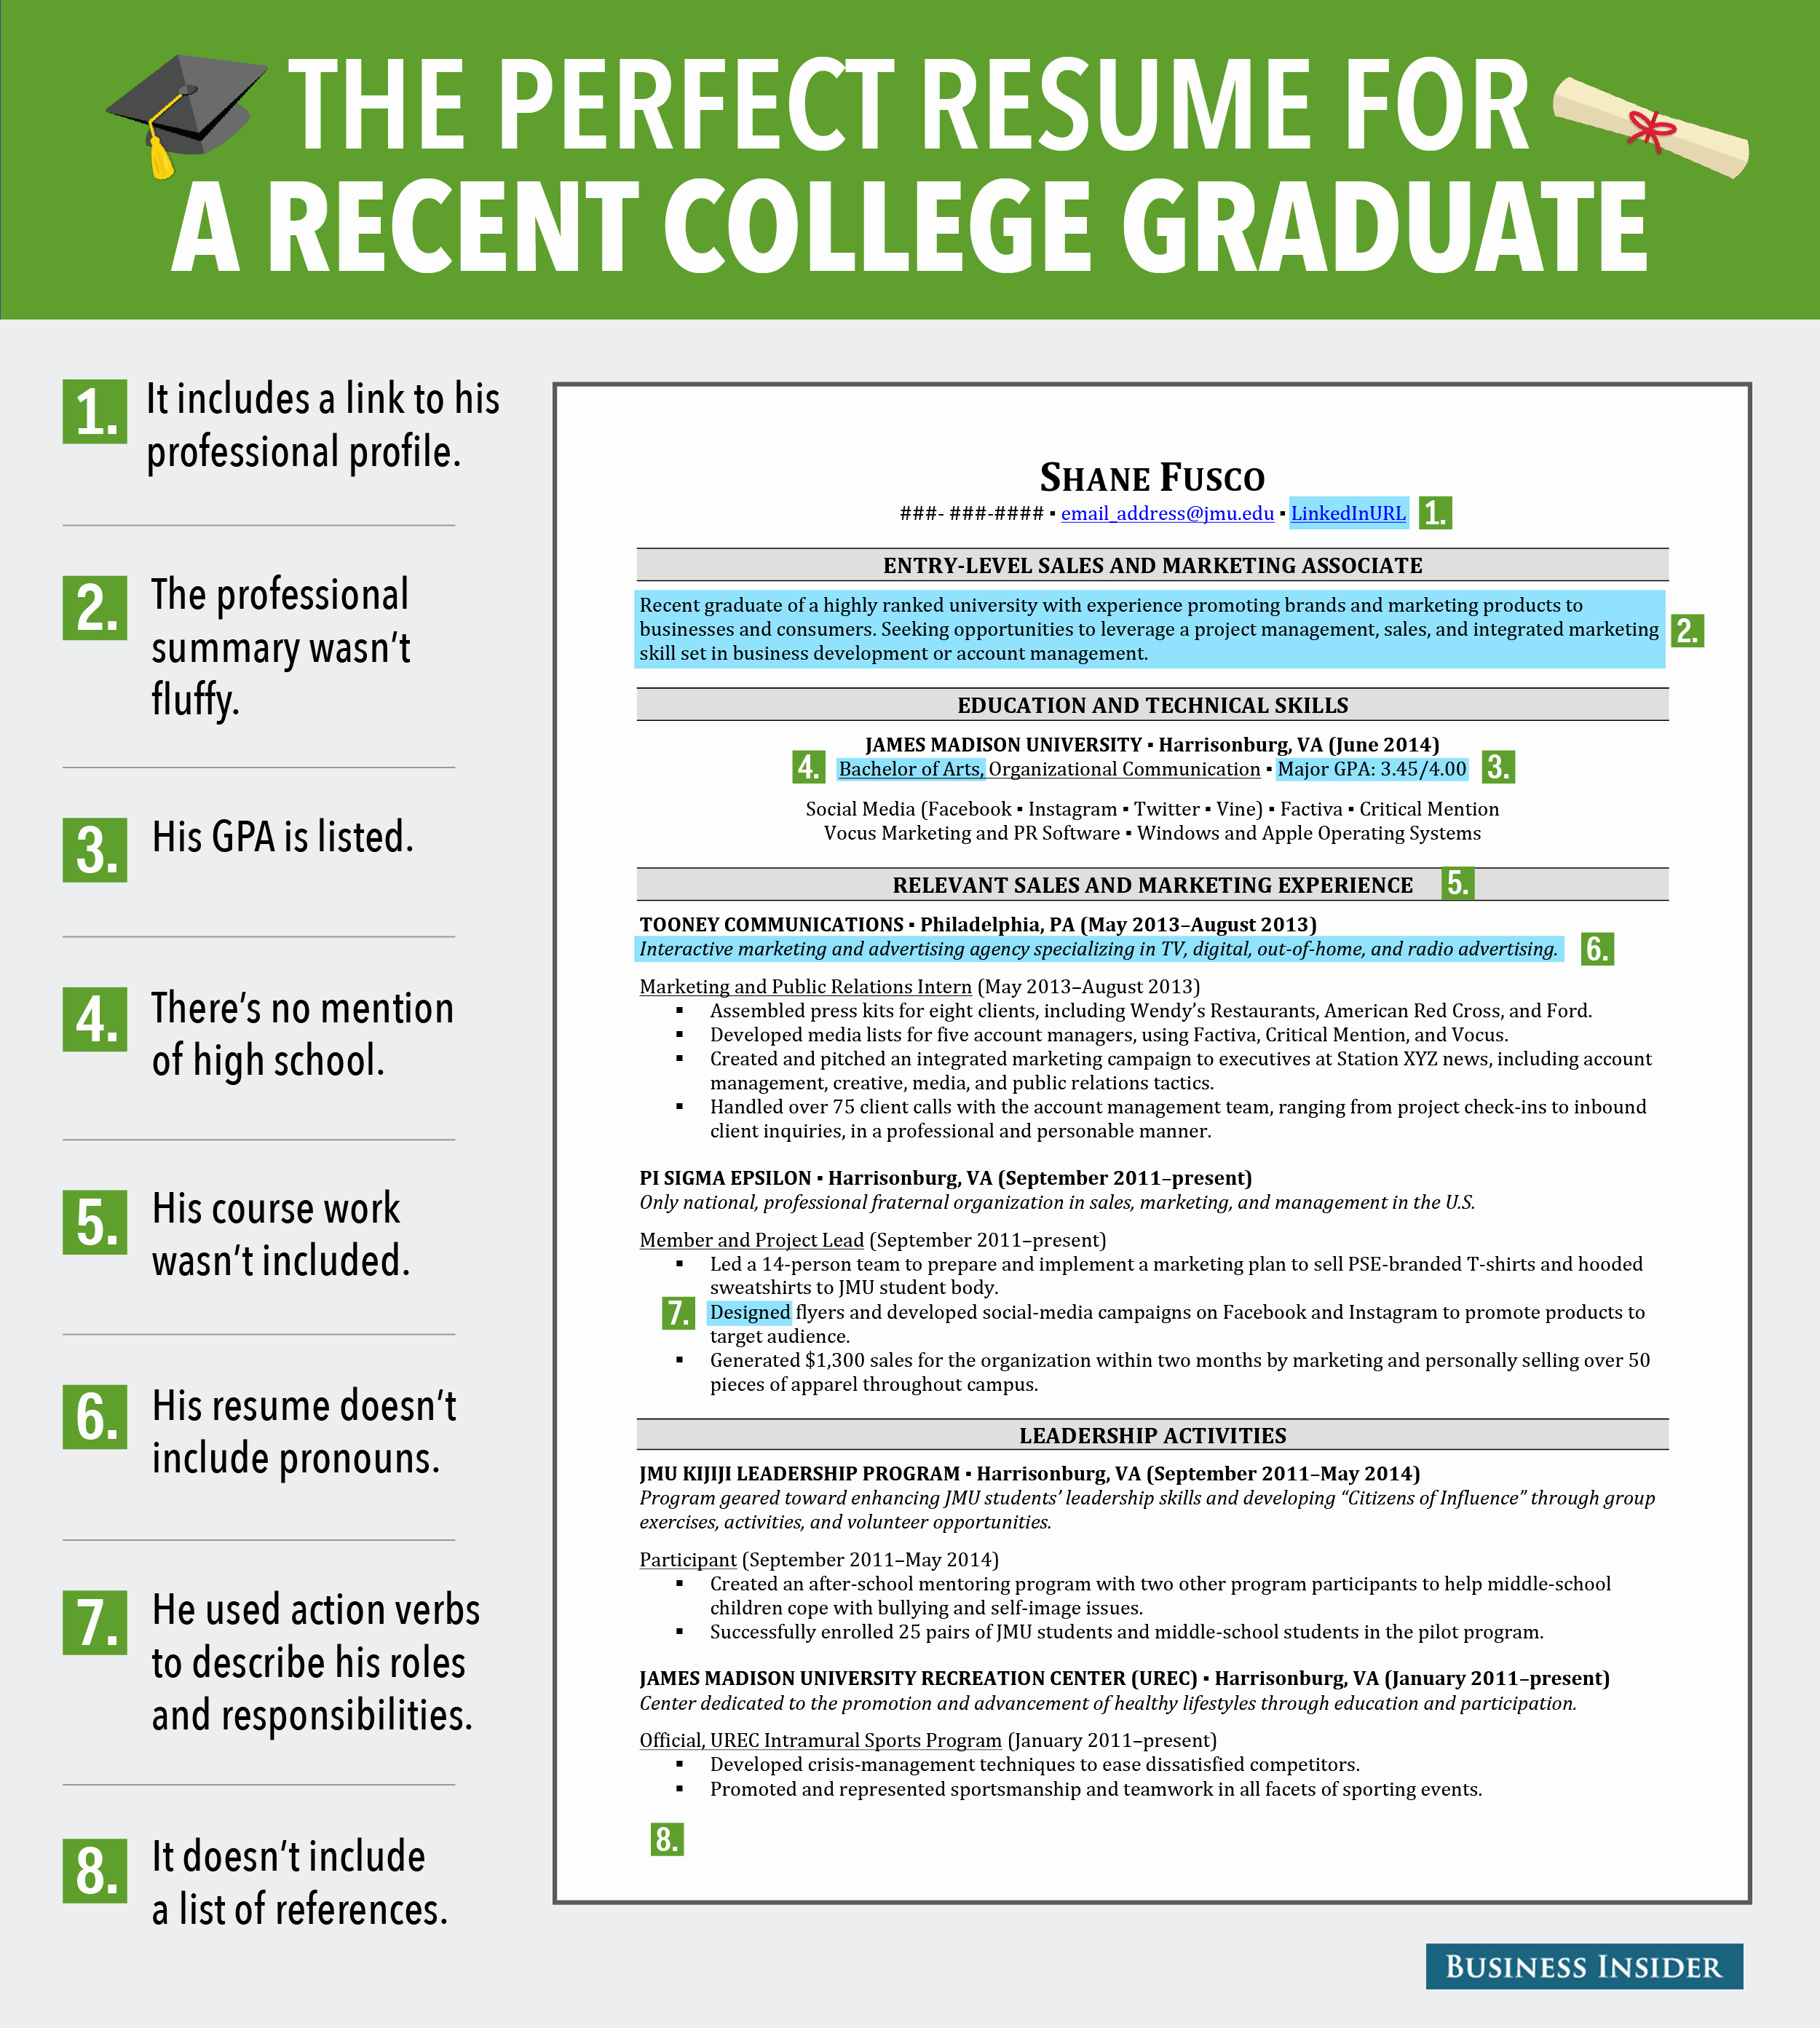 Resumes for New College Graduates Unique Excellent Resume for Recent Grad Business Insider